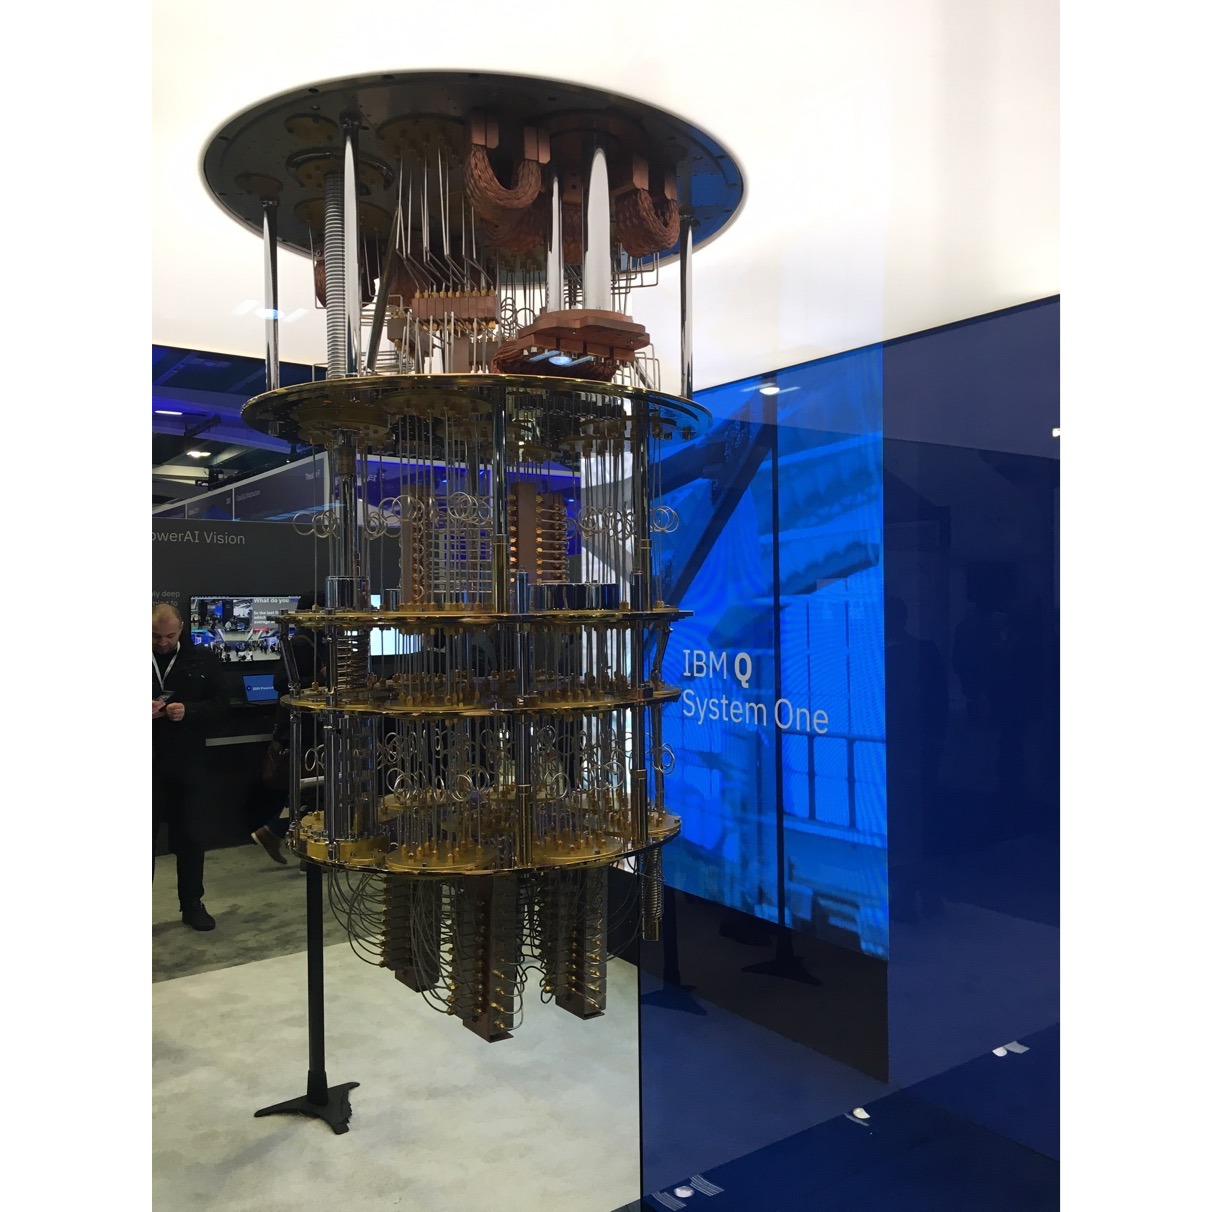 Today's largest publicly available computer from IBM: IBM's Q System One, a 20-qubit machine, was on  parade at IBM's  believe Conference in San Francisco this February. It is shown here without the cooling required to  gain it to a fraction of a degree above absolute zero. Source: SecurityFirst